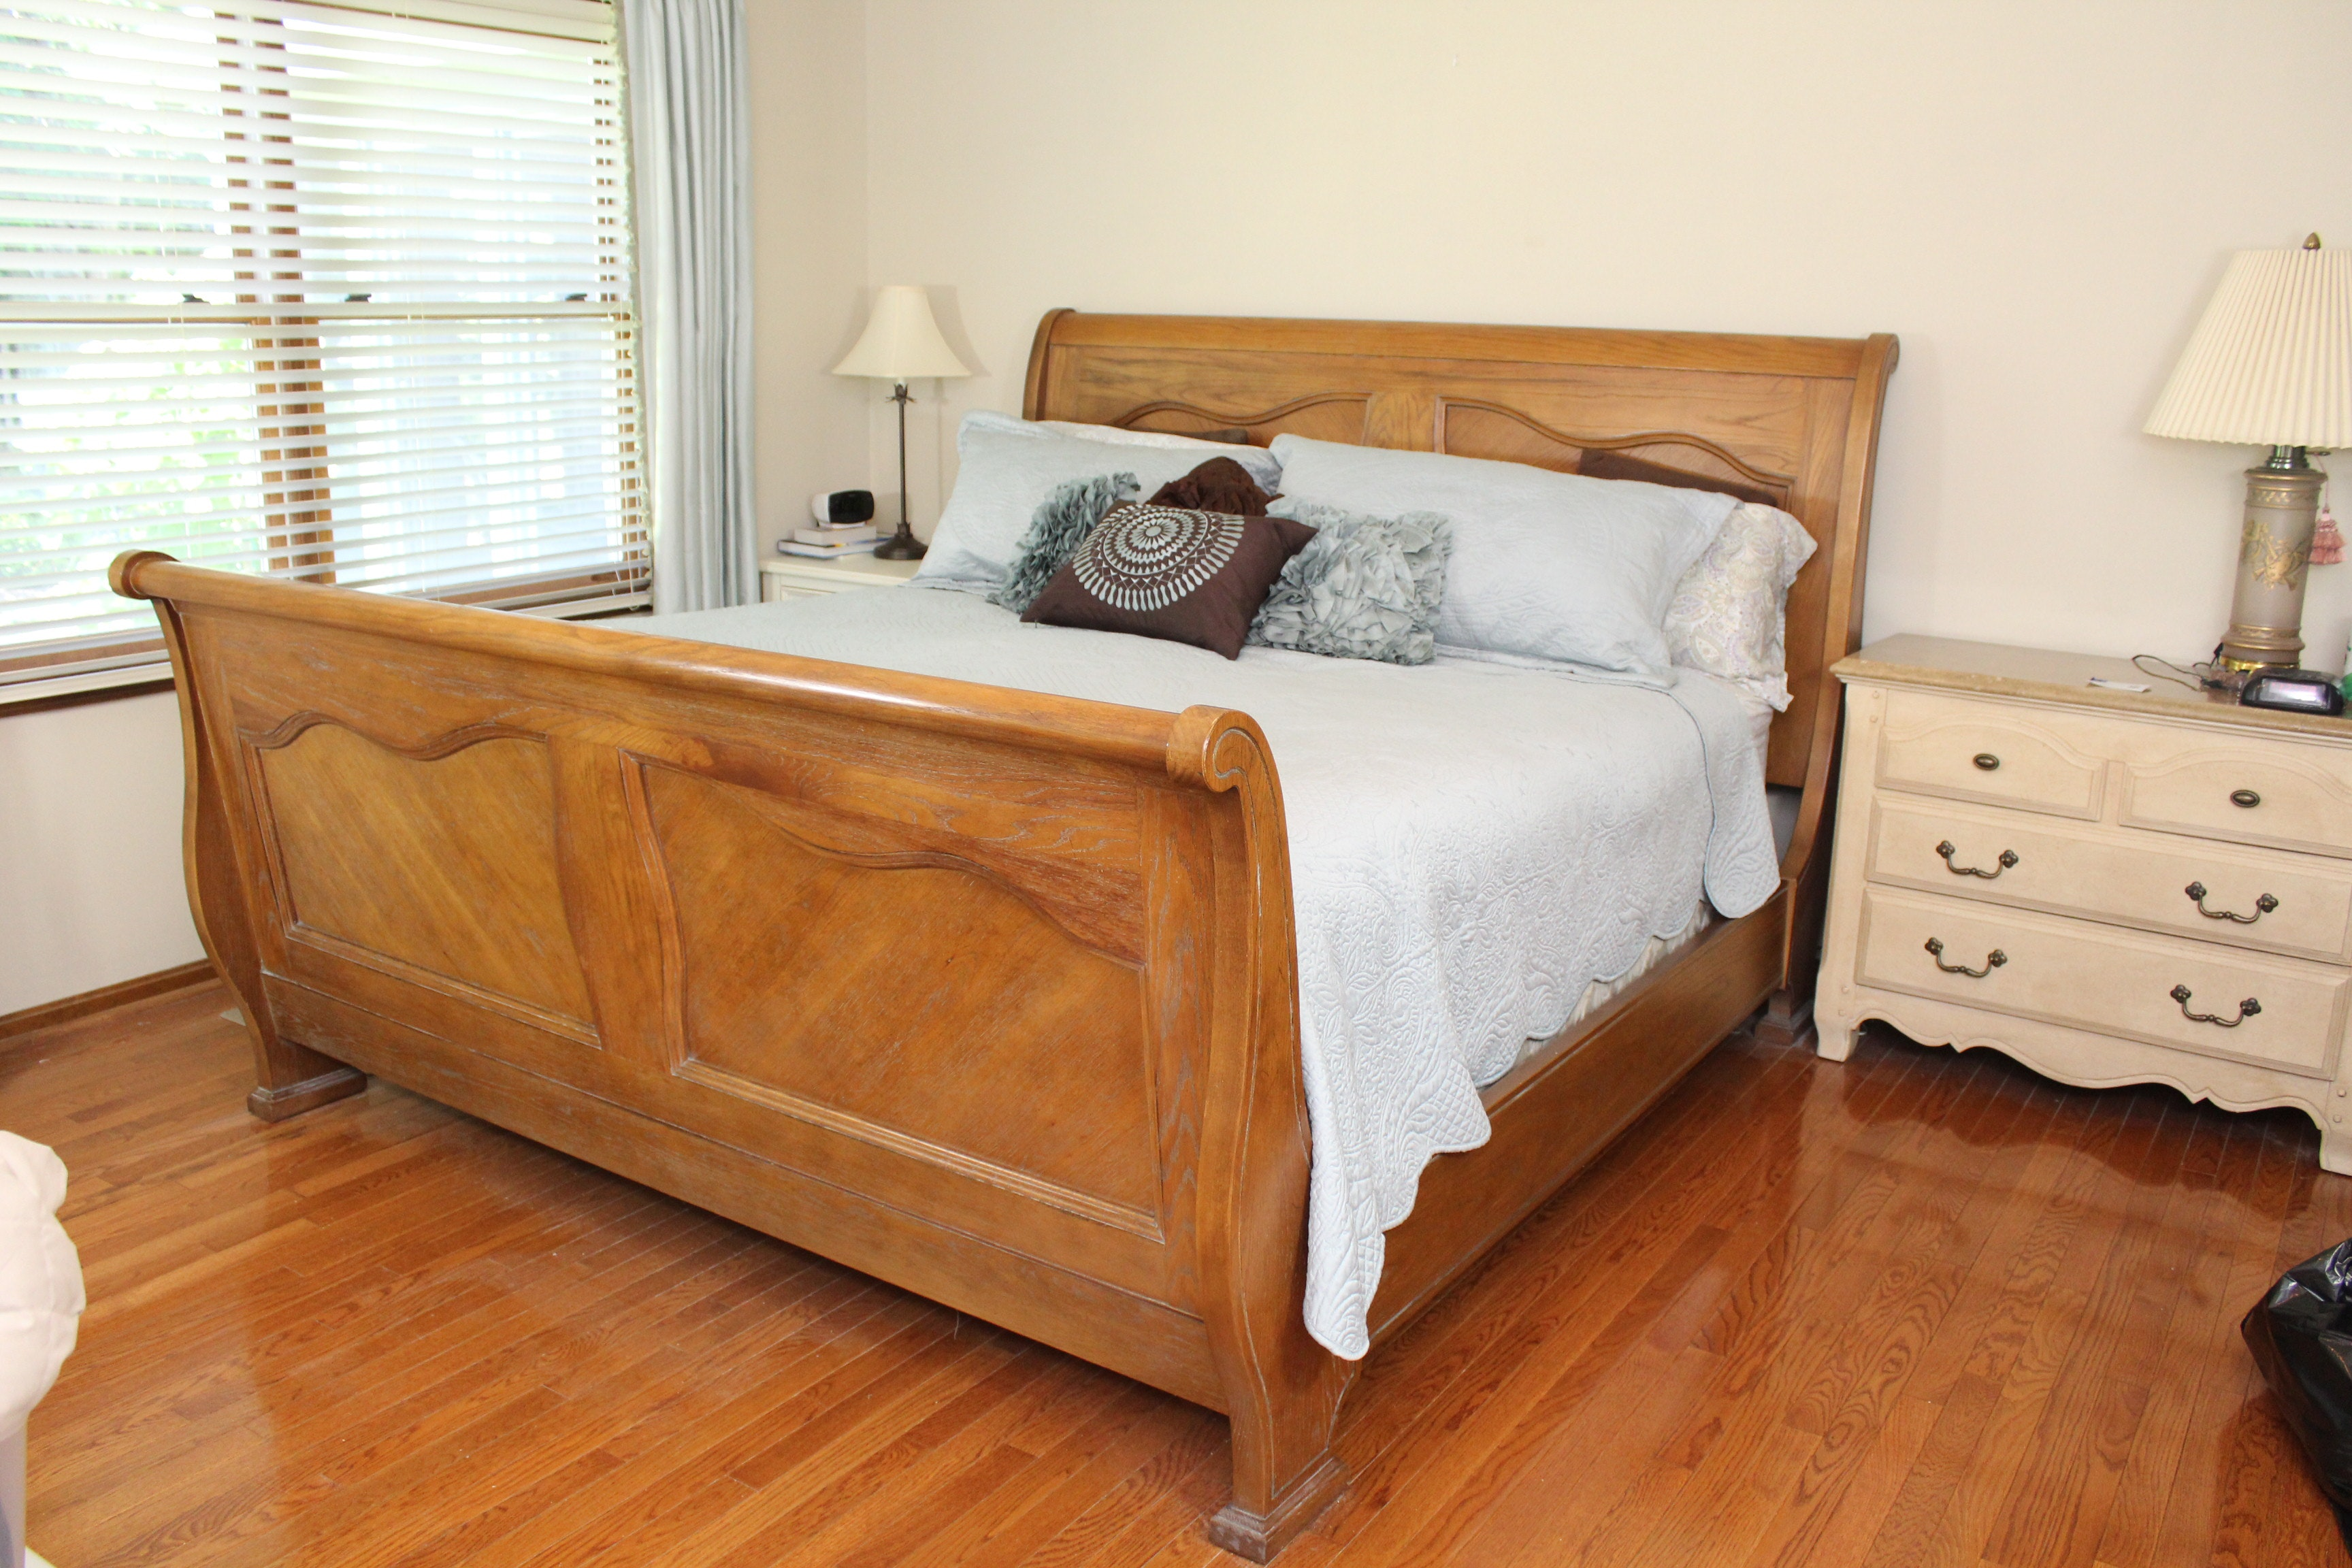 King-Size Oak Sleigh Bed Frame